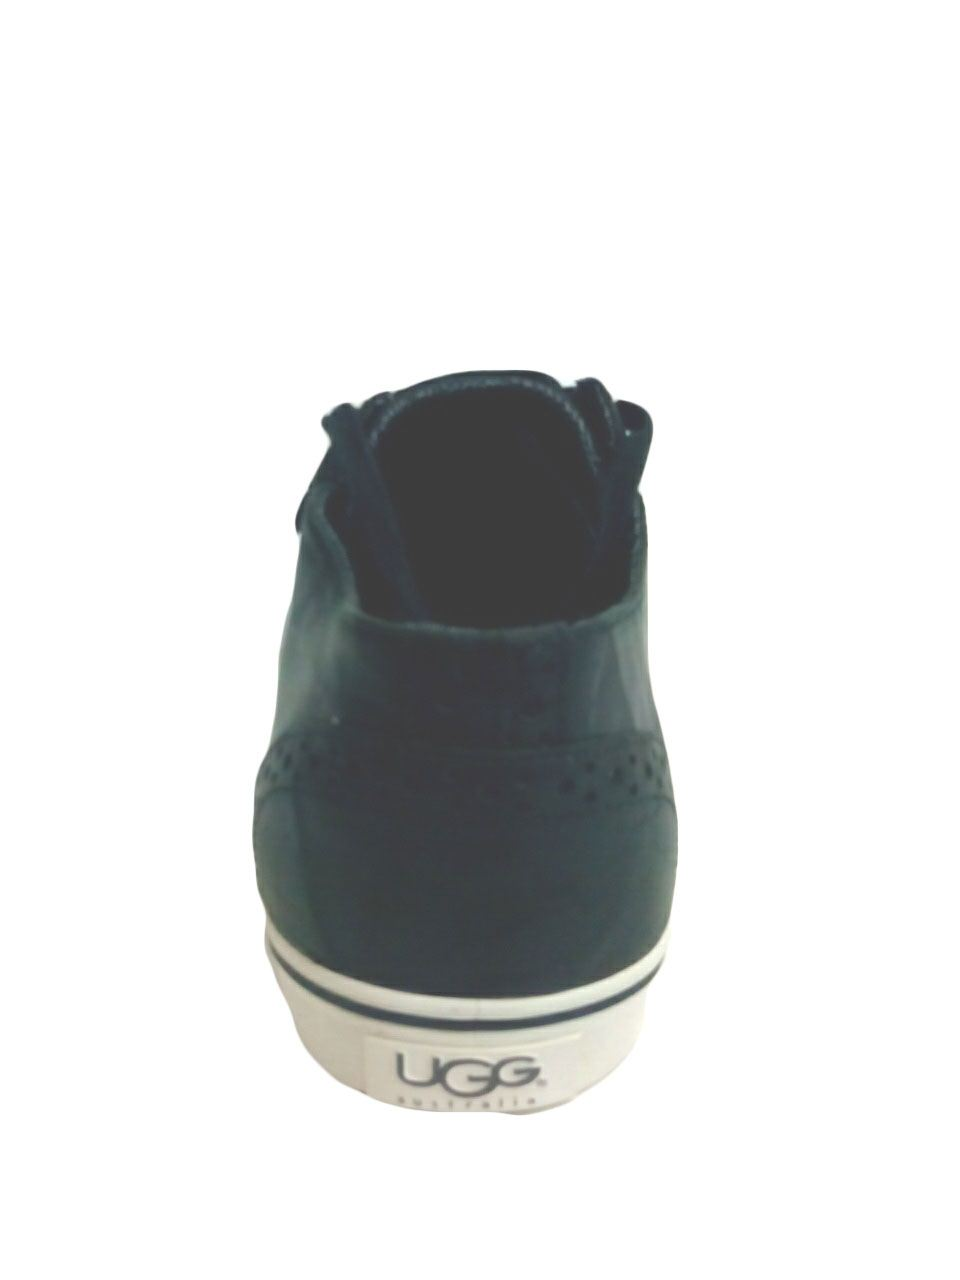 ugg slippers m and m direct